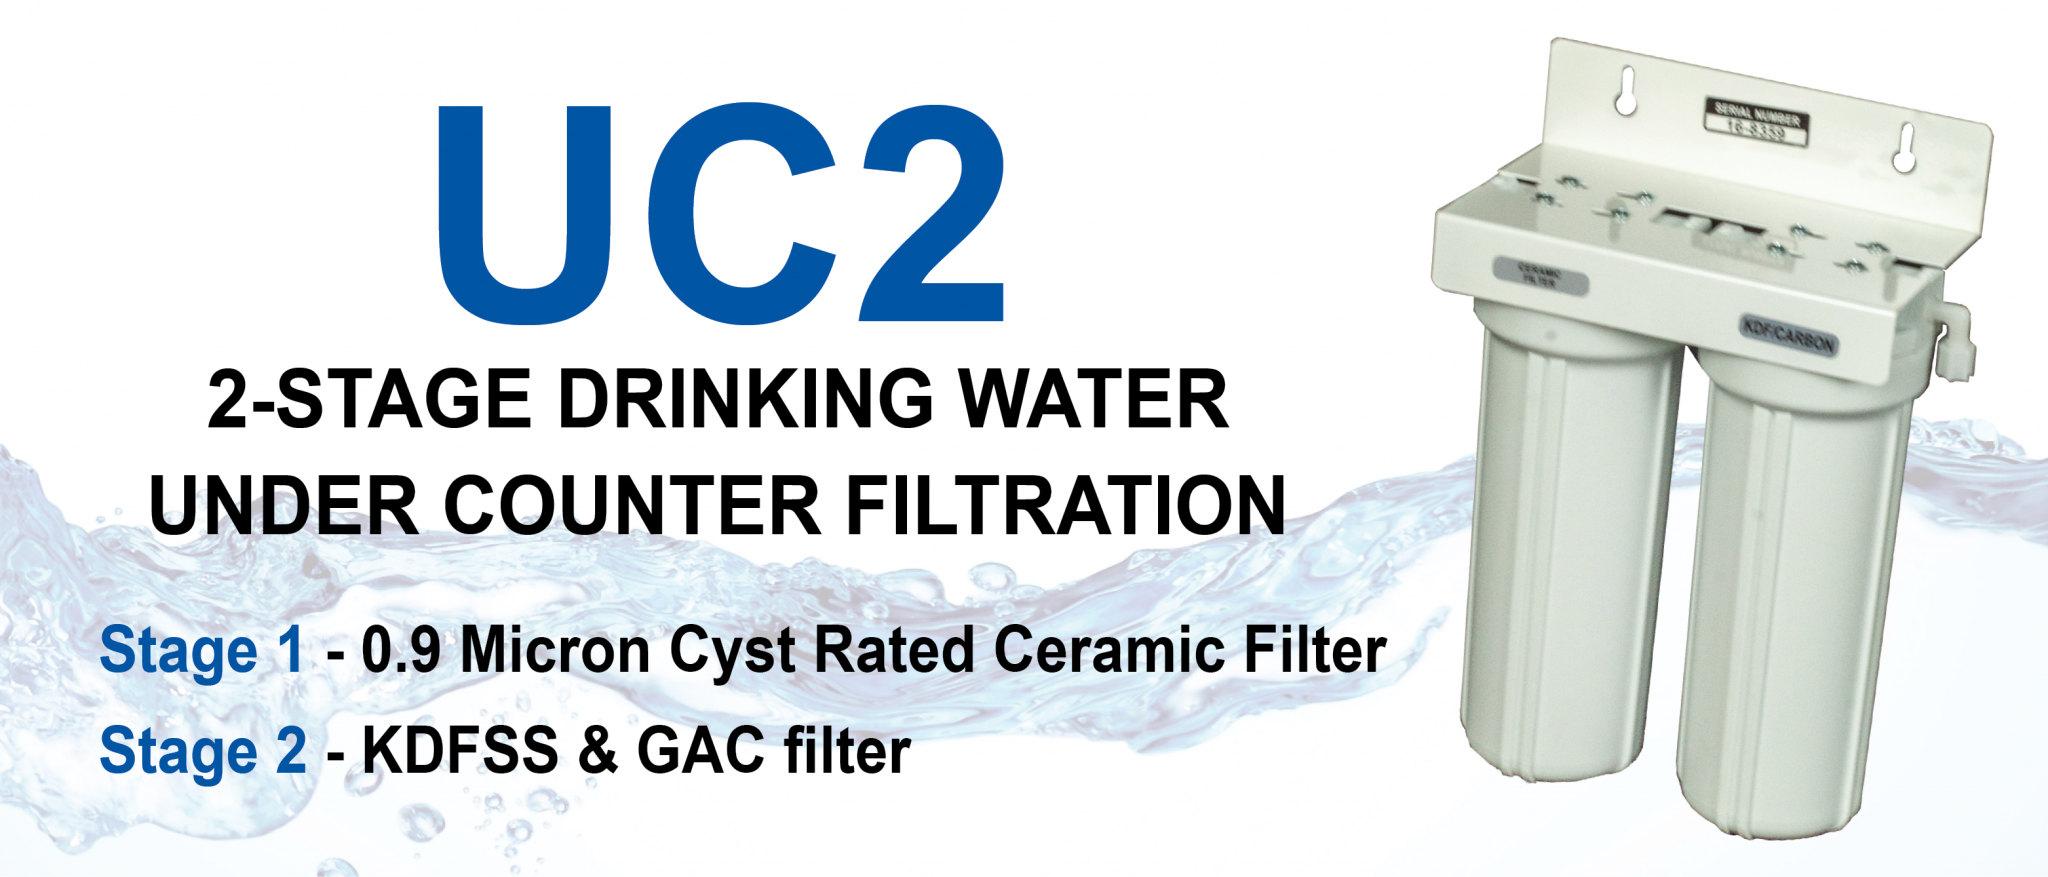 2-STAGE DRINKING WATER UNDER THE SINK WATER FILTRATION SYSTEM